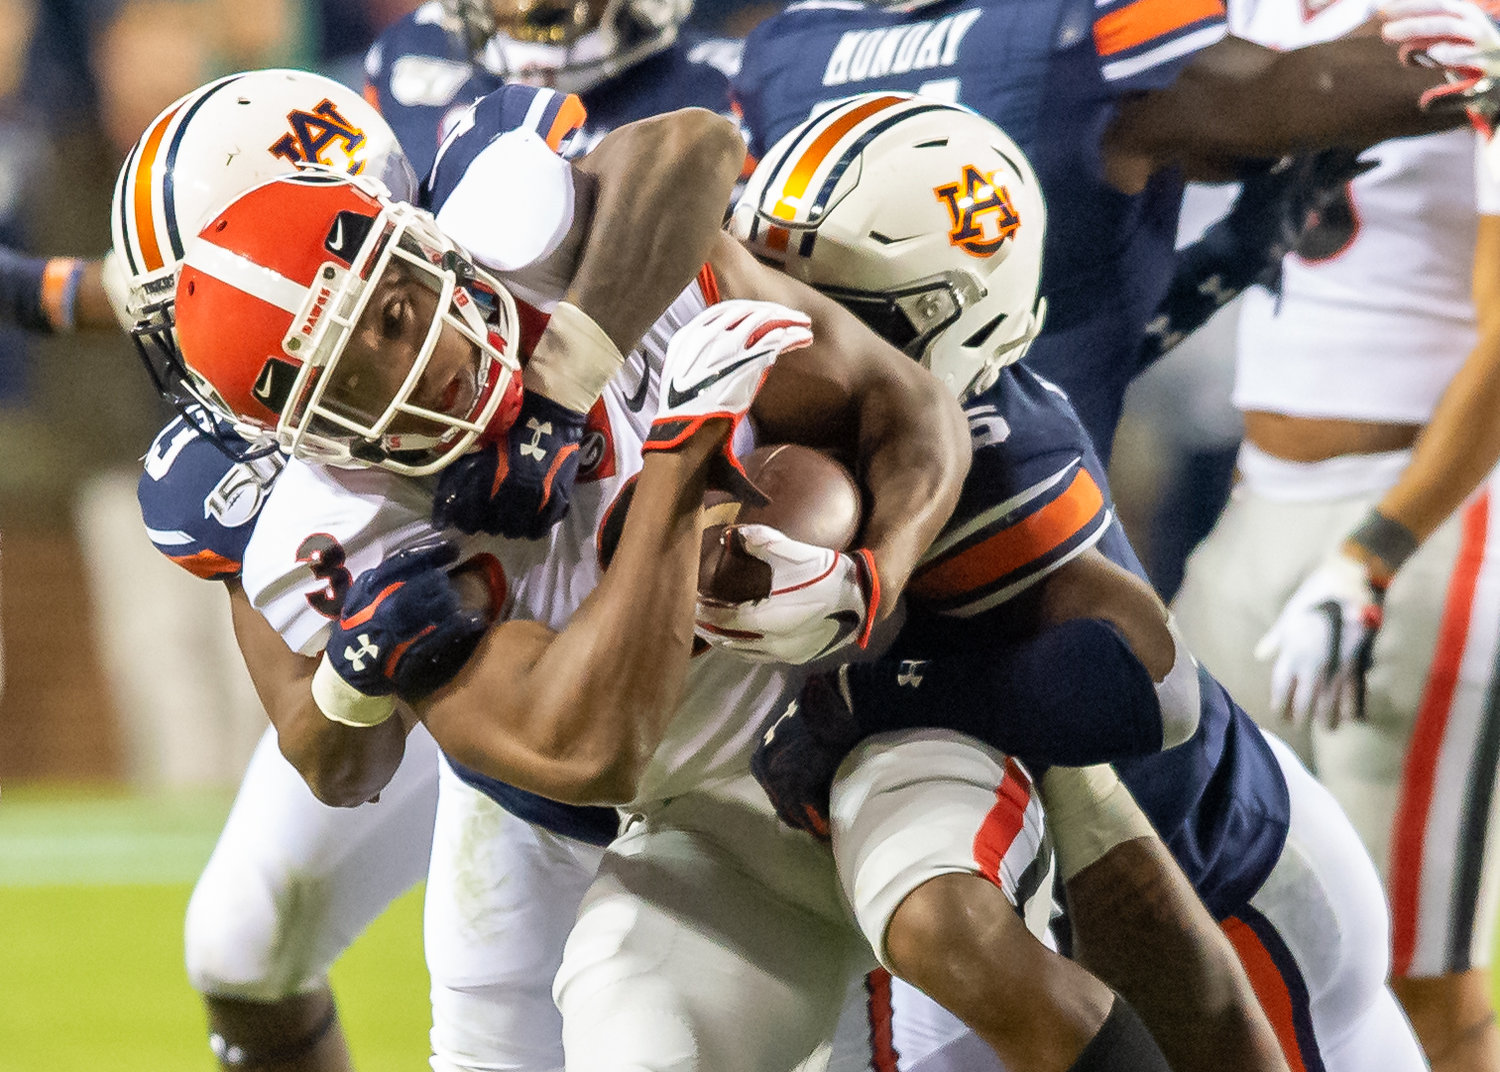 Georgia Bulldogs running back Zamir White (3) is brought down by Auburn Tigers linebacker Zakoby McClain (35) during the second half of Saturday's game, at Jordan-Hare Stadium in Auburn,, AL. Daily Mountain Eagle -  Jeff Johnsey